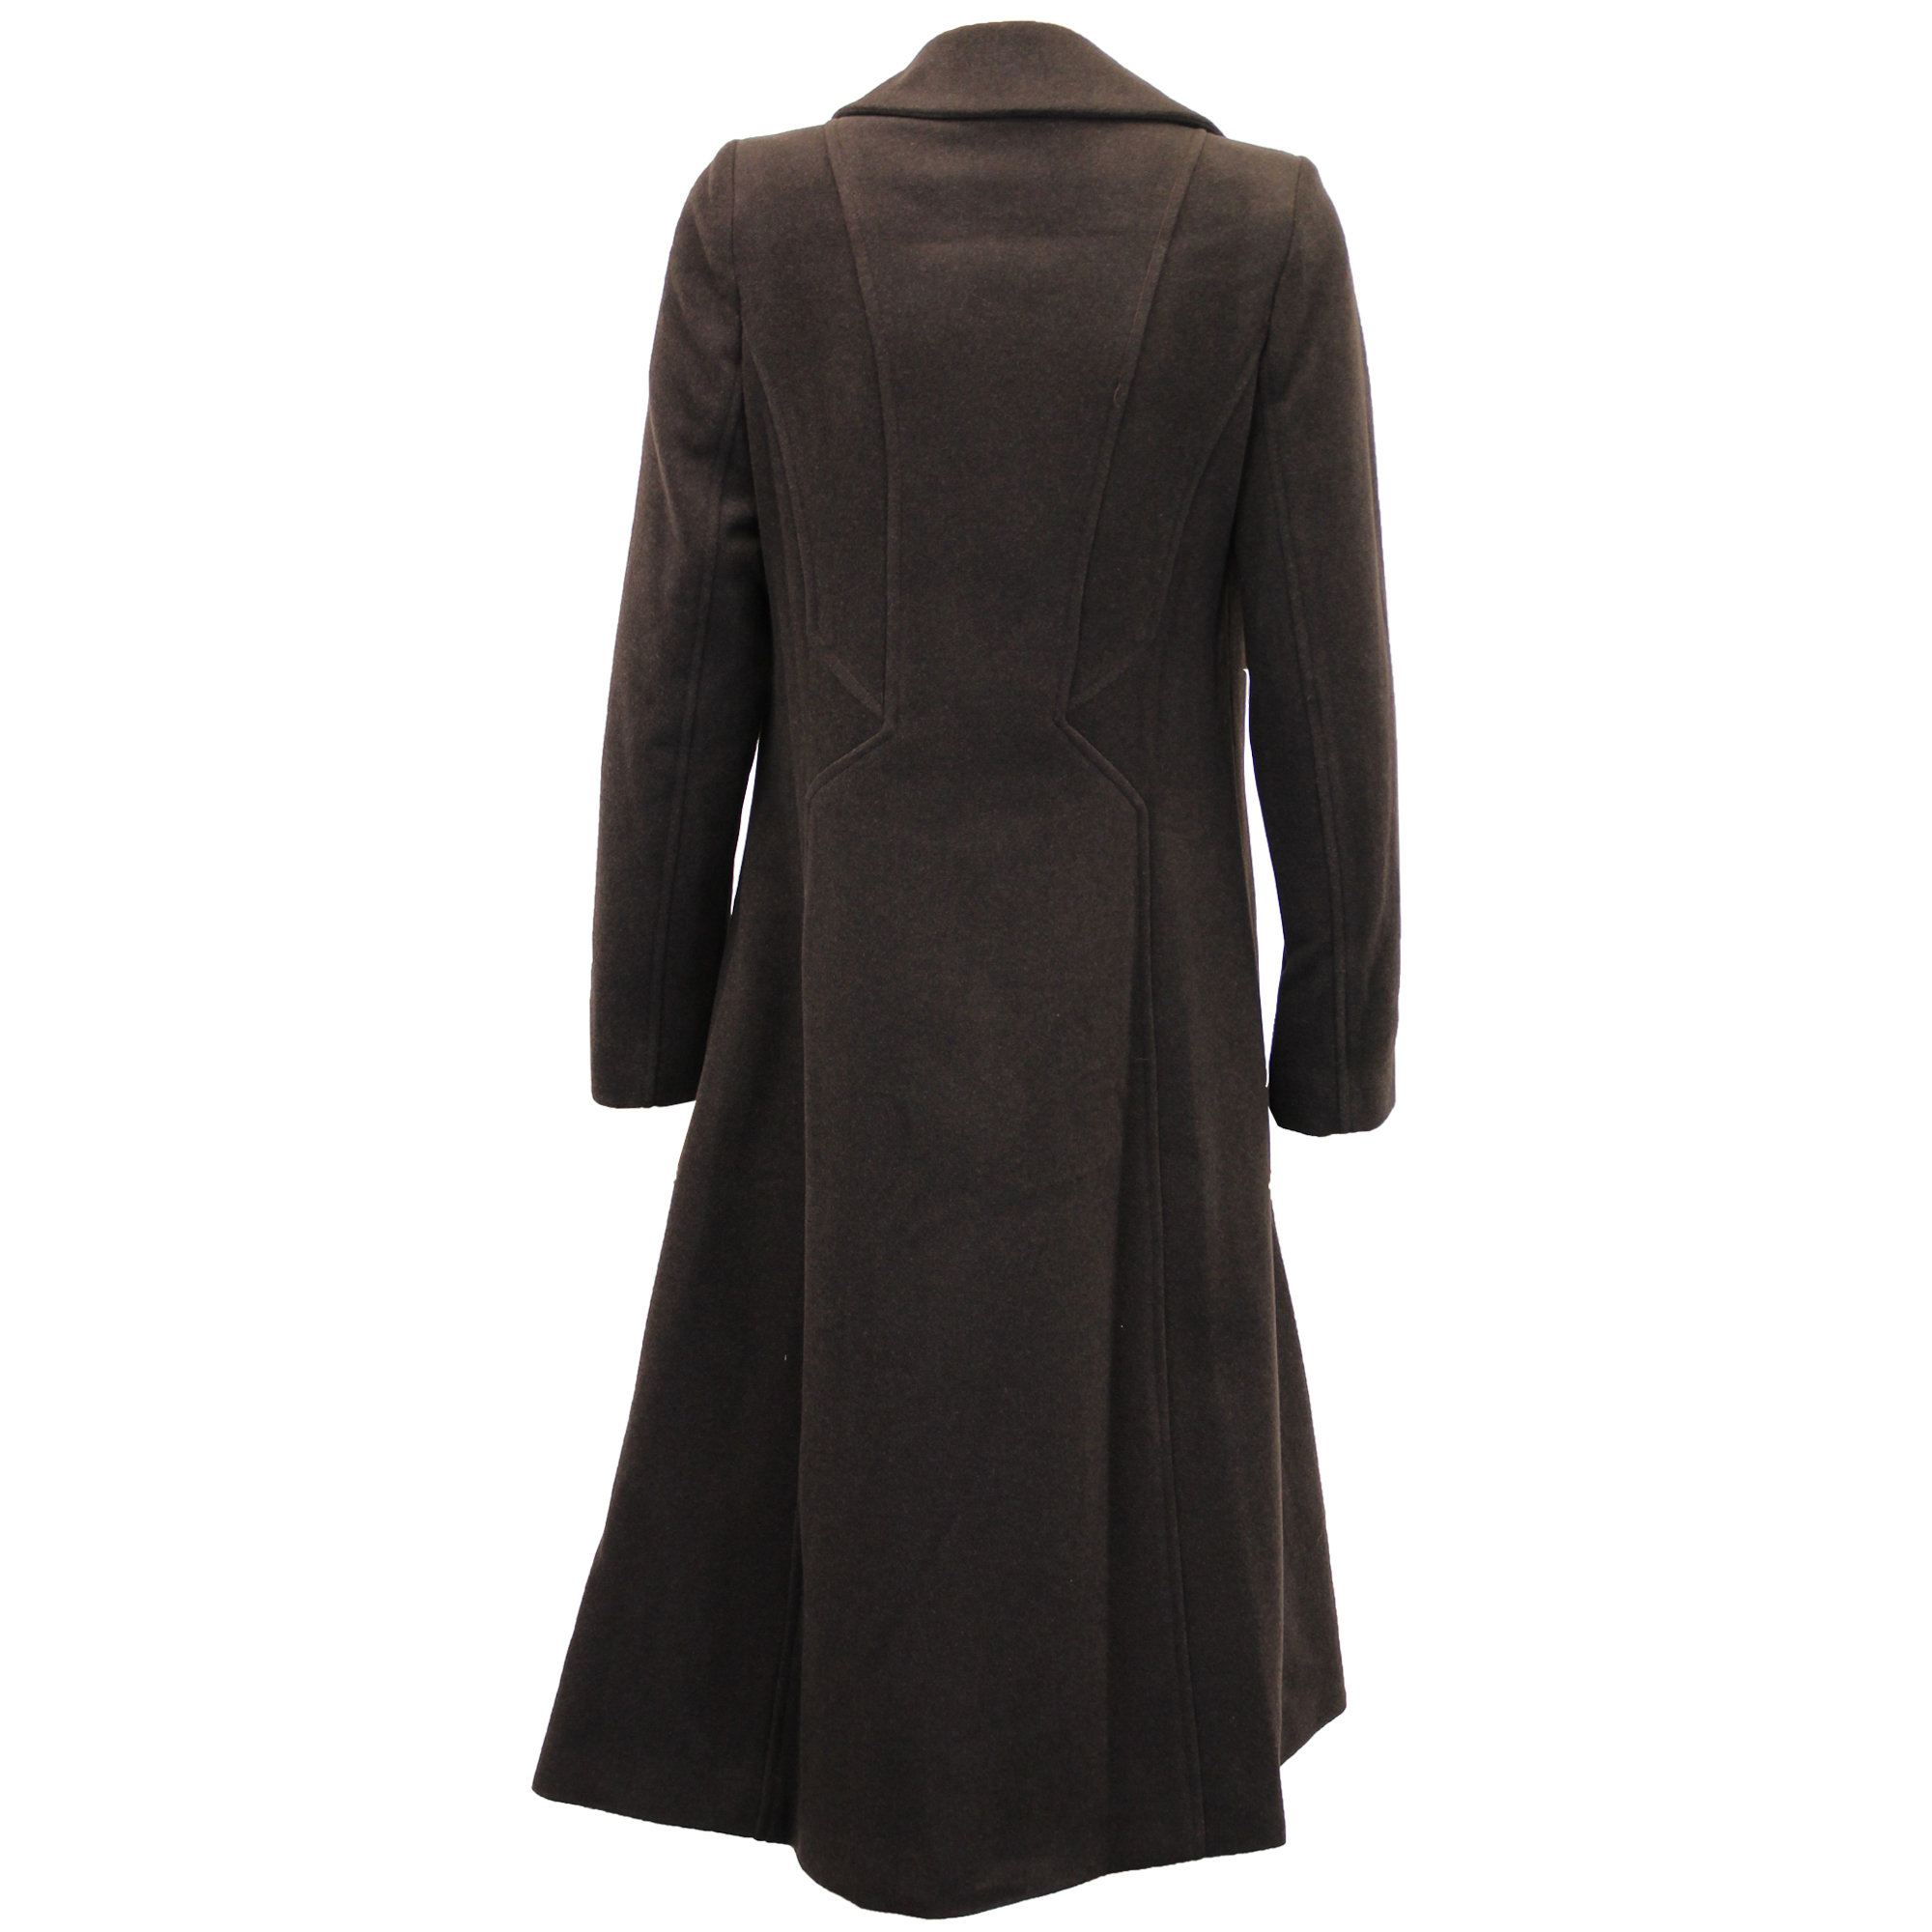 Winter coats for women uk